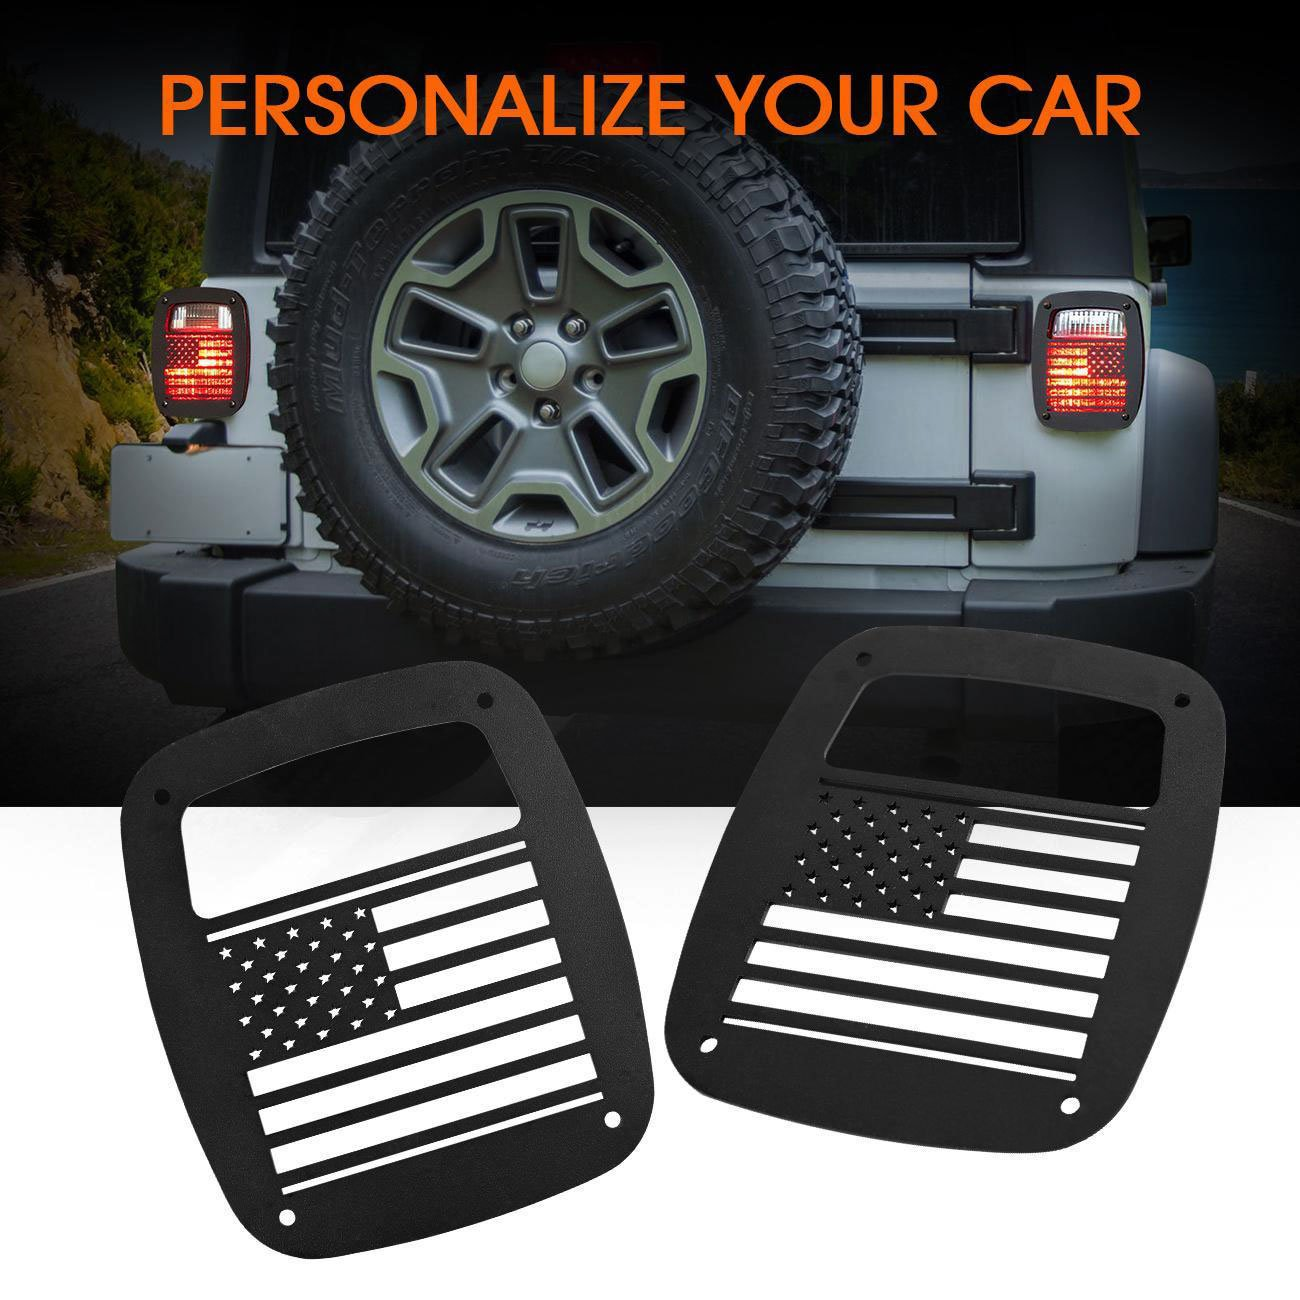 POWLAB 2Pcs Black Exterior Rear Tail Light Guard Cover Protect Shade Soldier Shape Hollow Out For Jeep Wrangler 1987-2006 TJ YJ